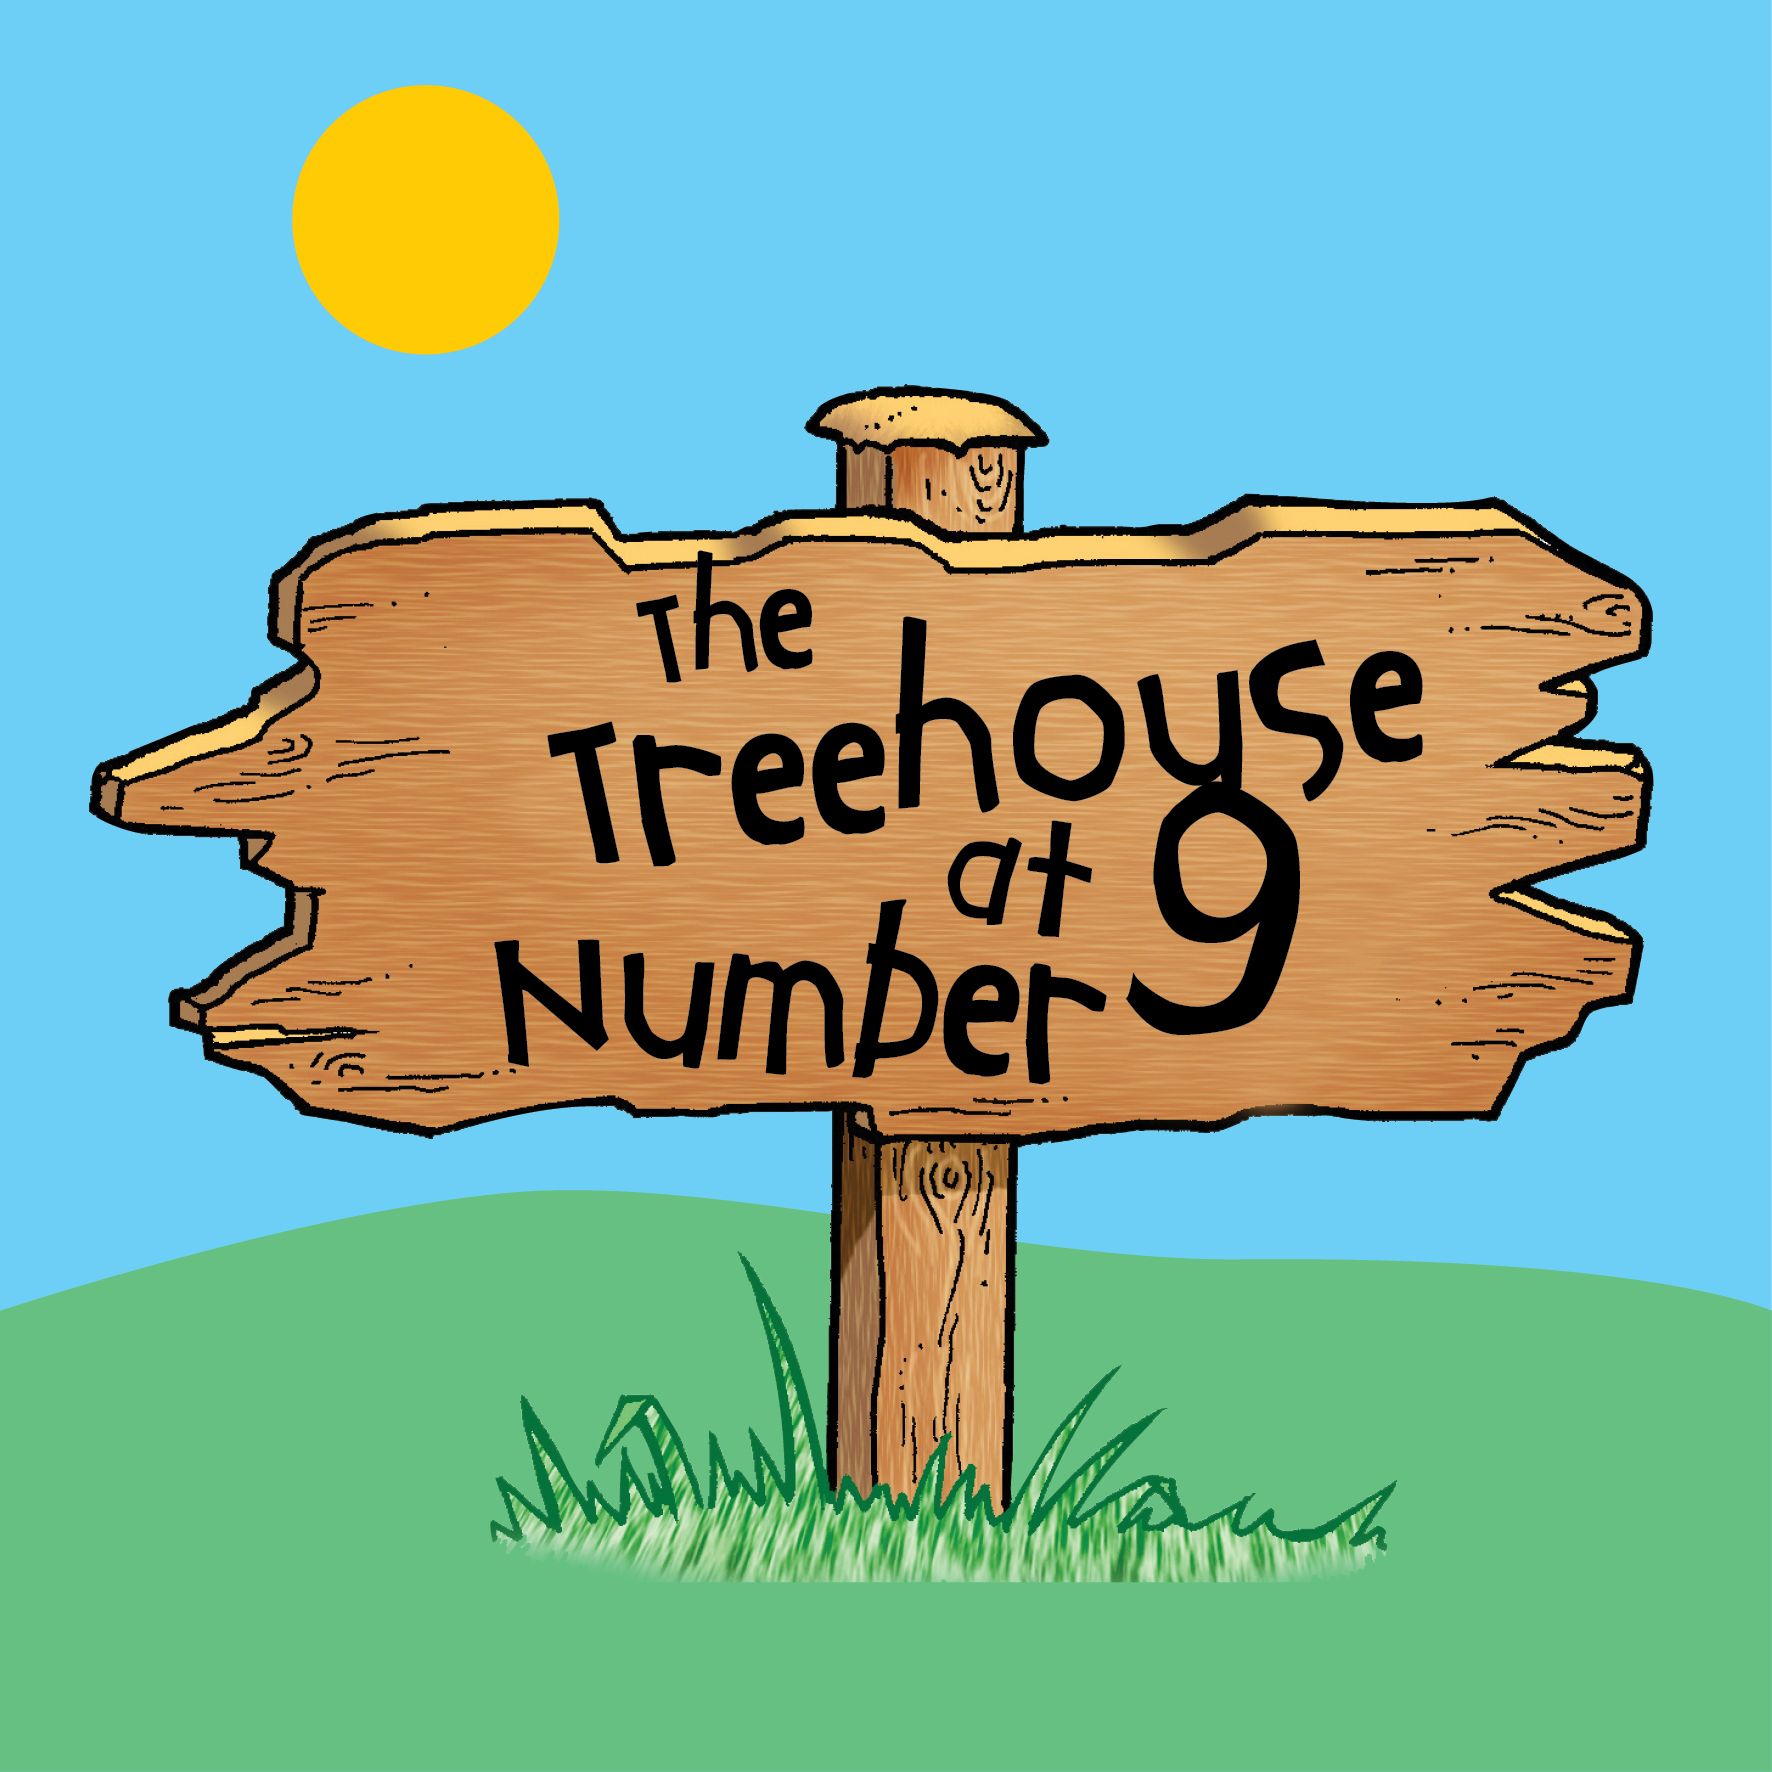 The Treehouse At Number 9